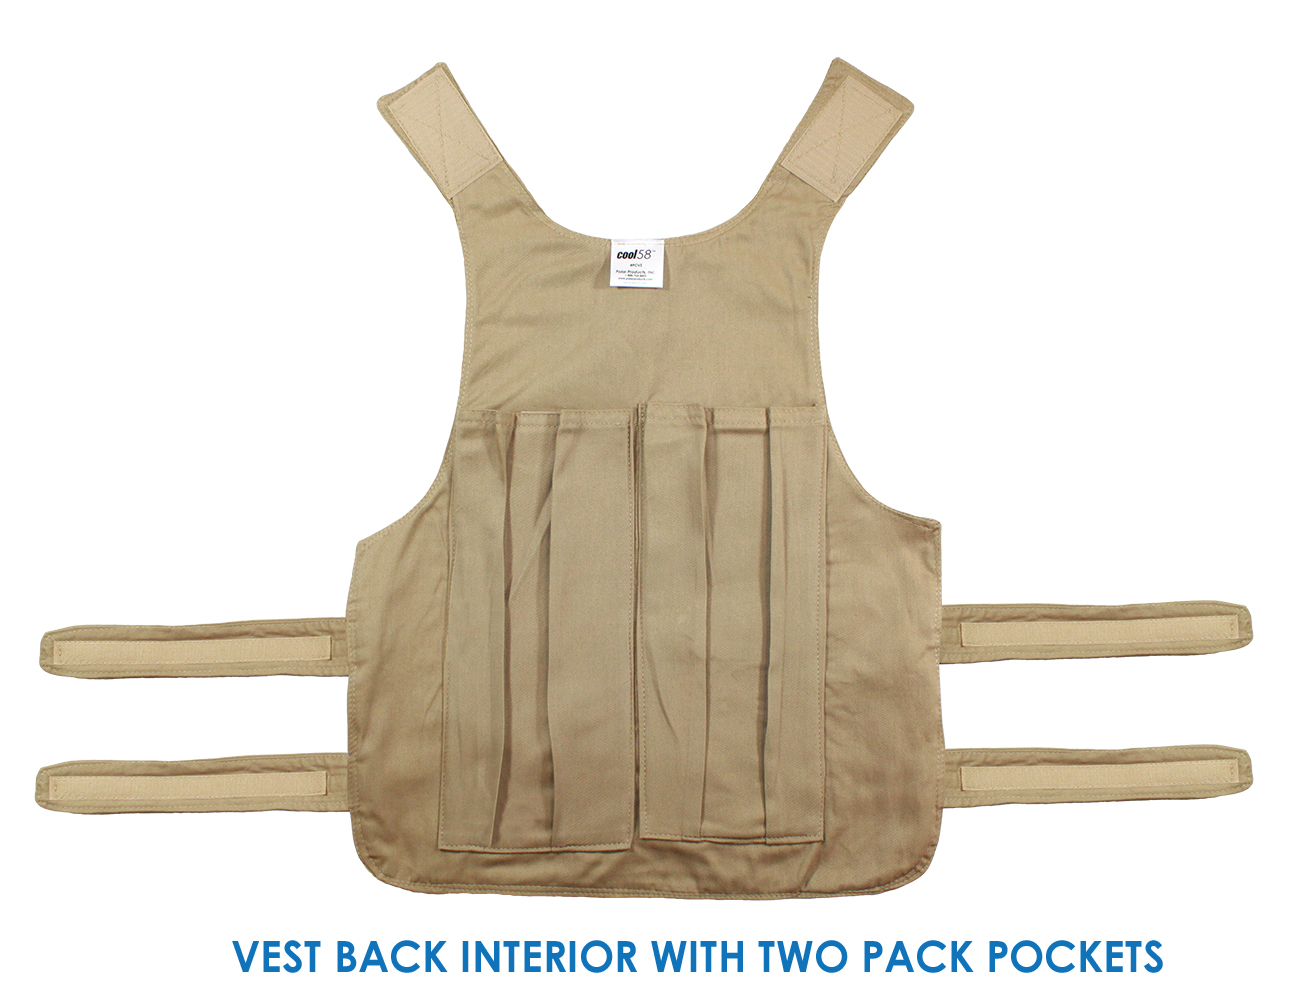 Back interior of a Cool58 adjustable phase change vest with two pack pockets